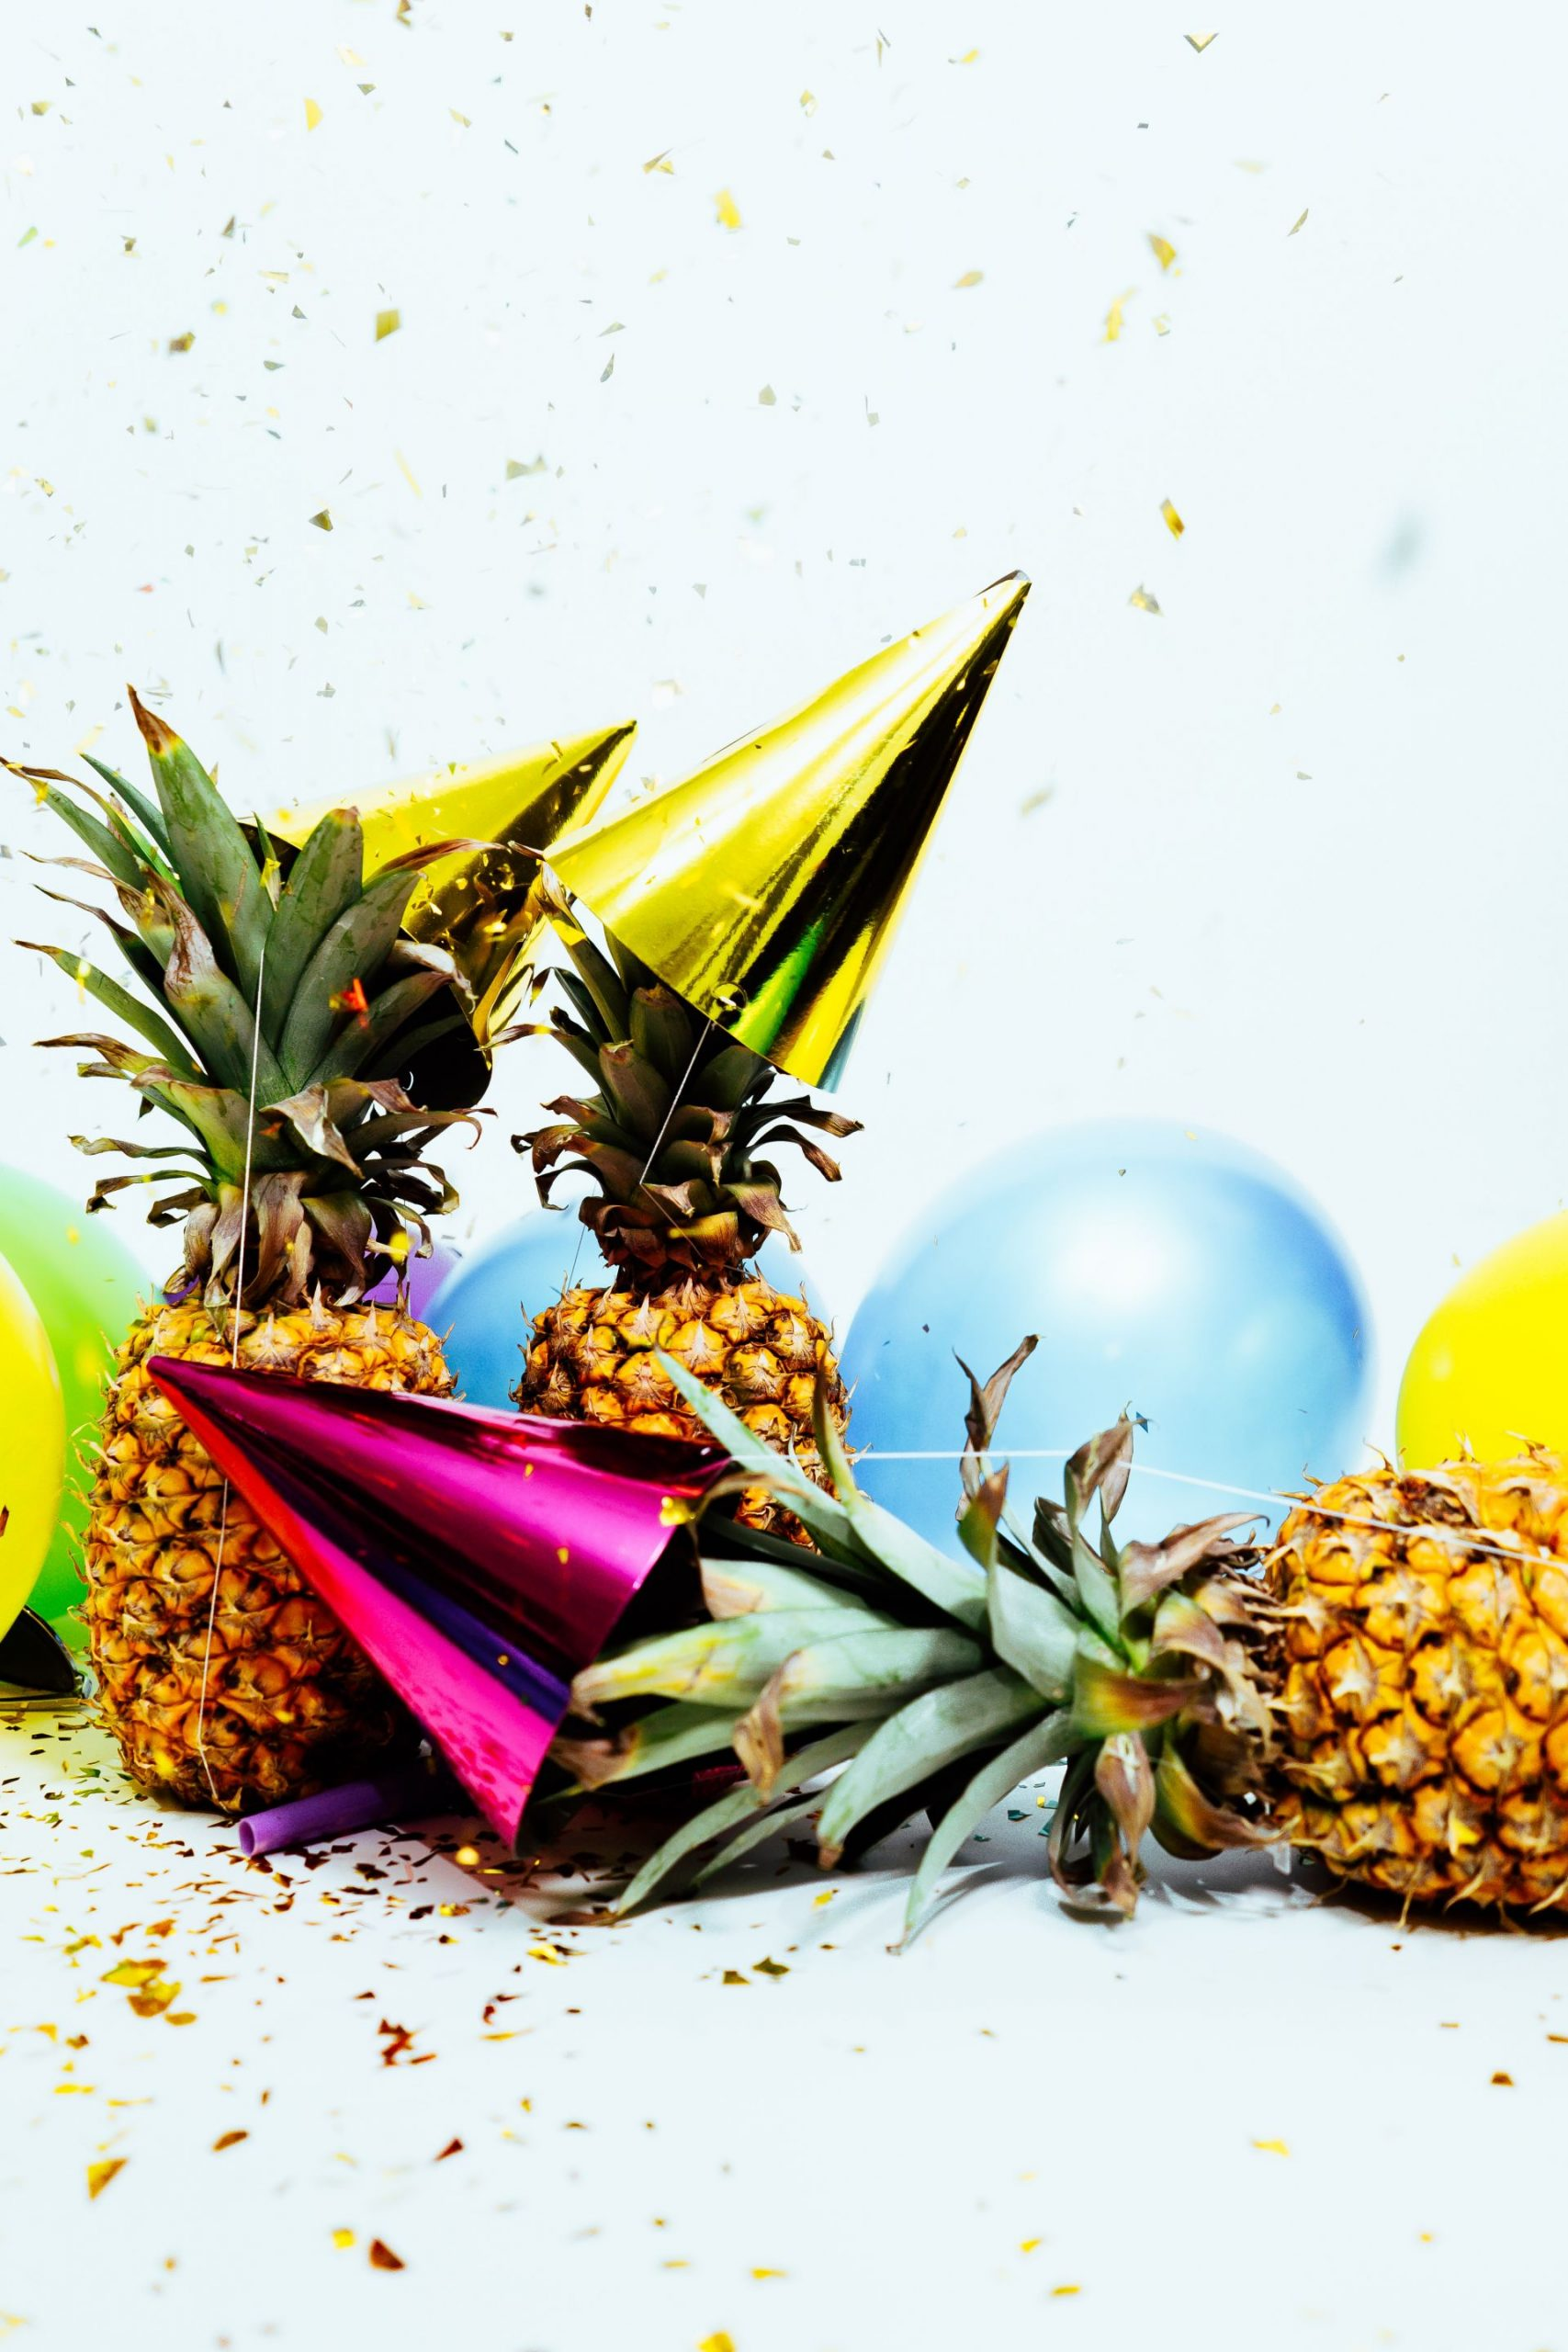 pineapple-supply-co-T7h7_v4Nwao-unsplash